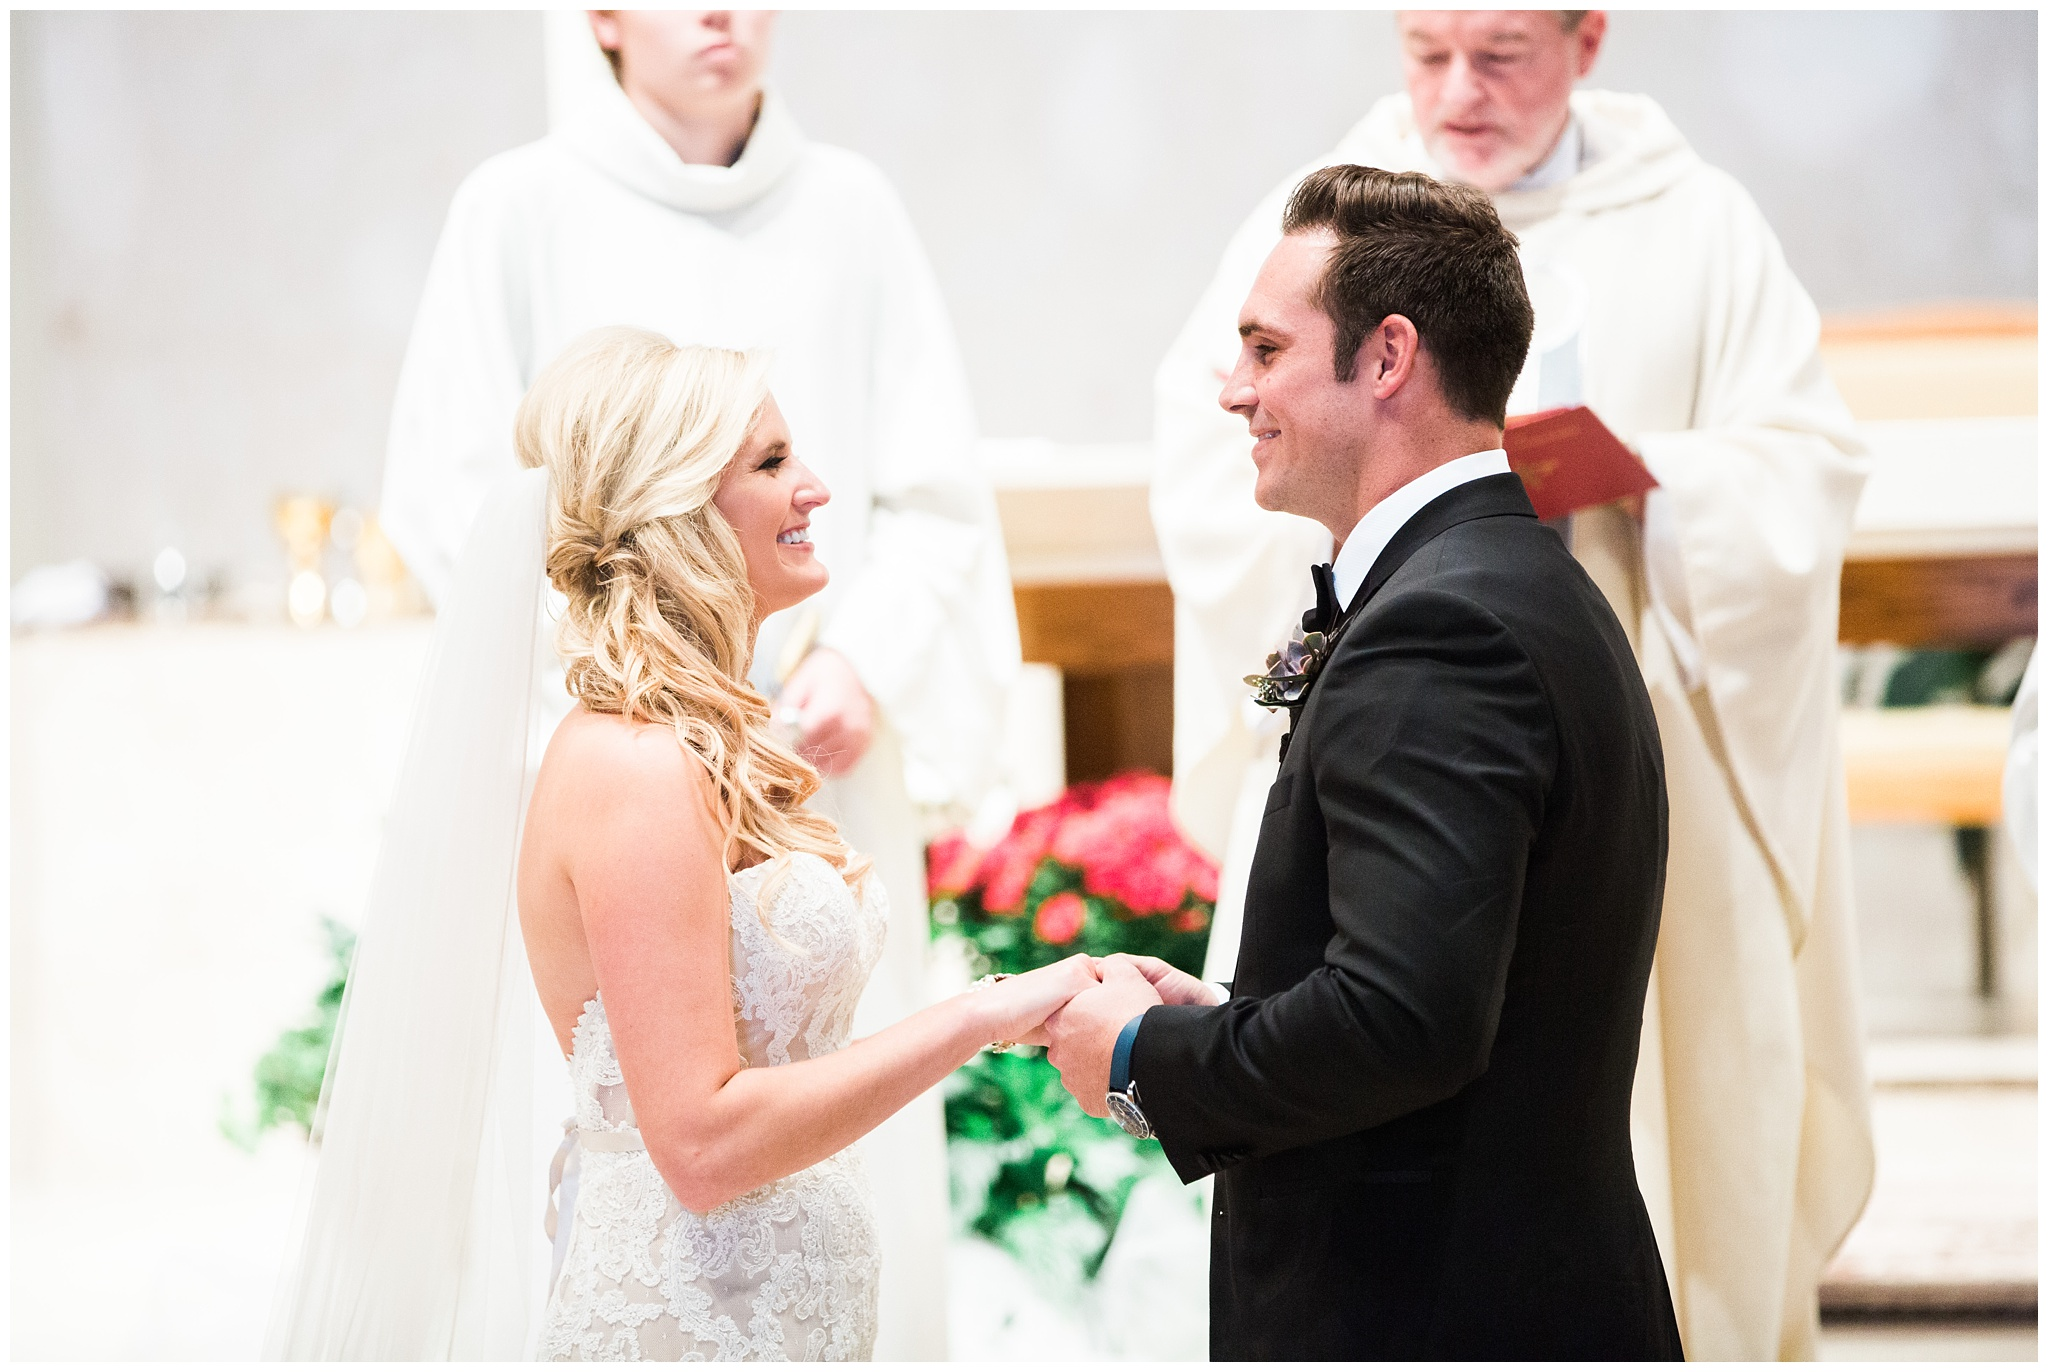 RebeccaHaleyPhotography_BarringtonPhotographer_ChicagoPhotographer_ChicagoWedding_0026.jpg